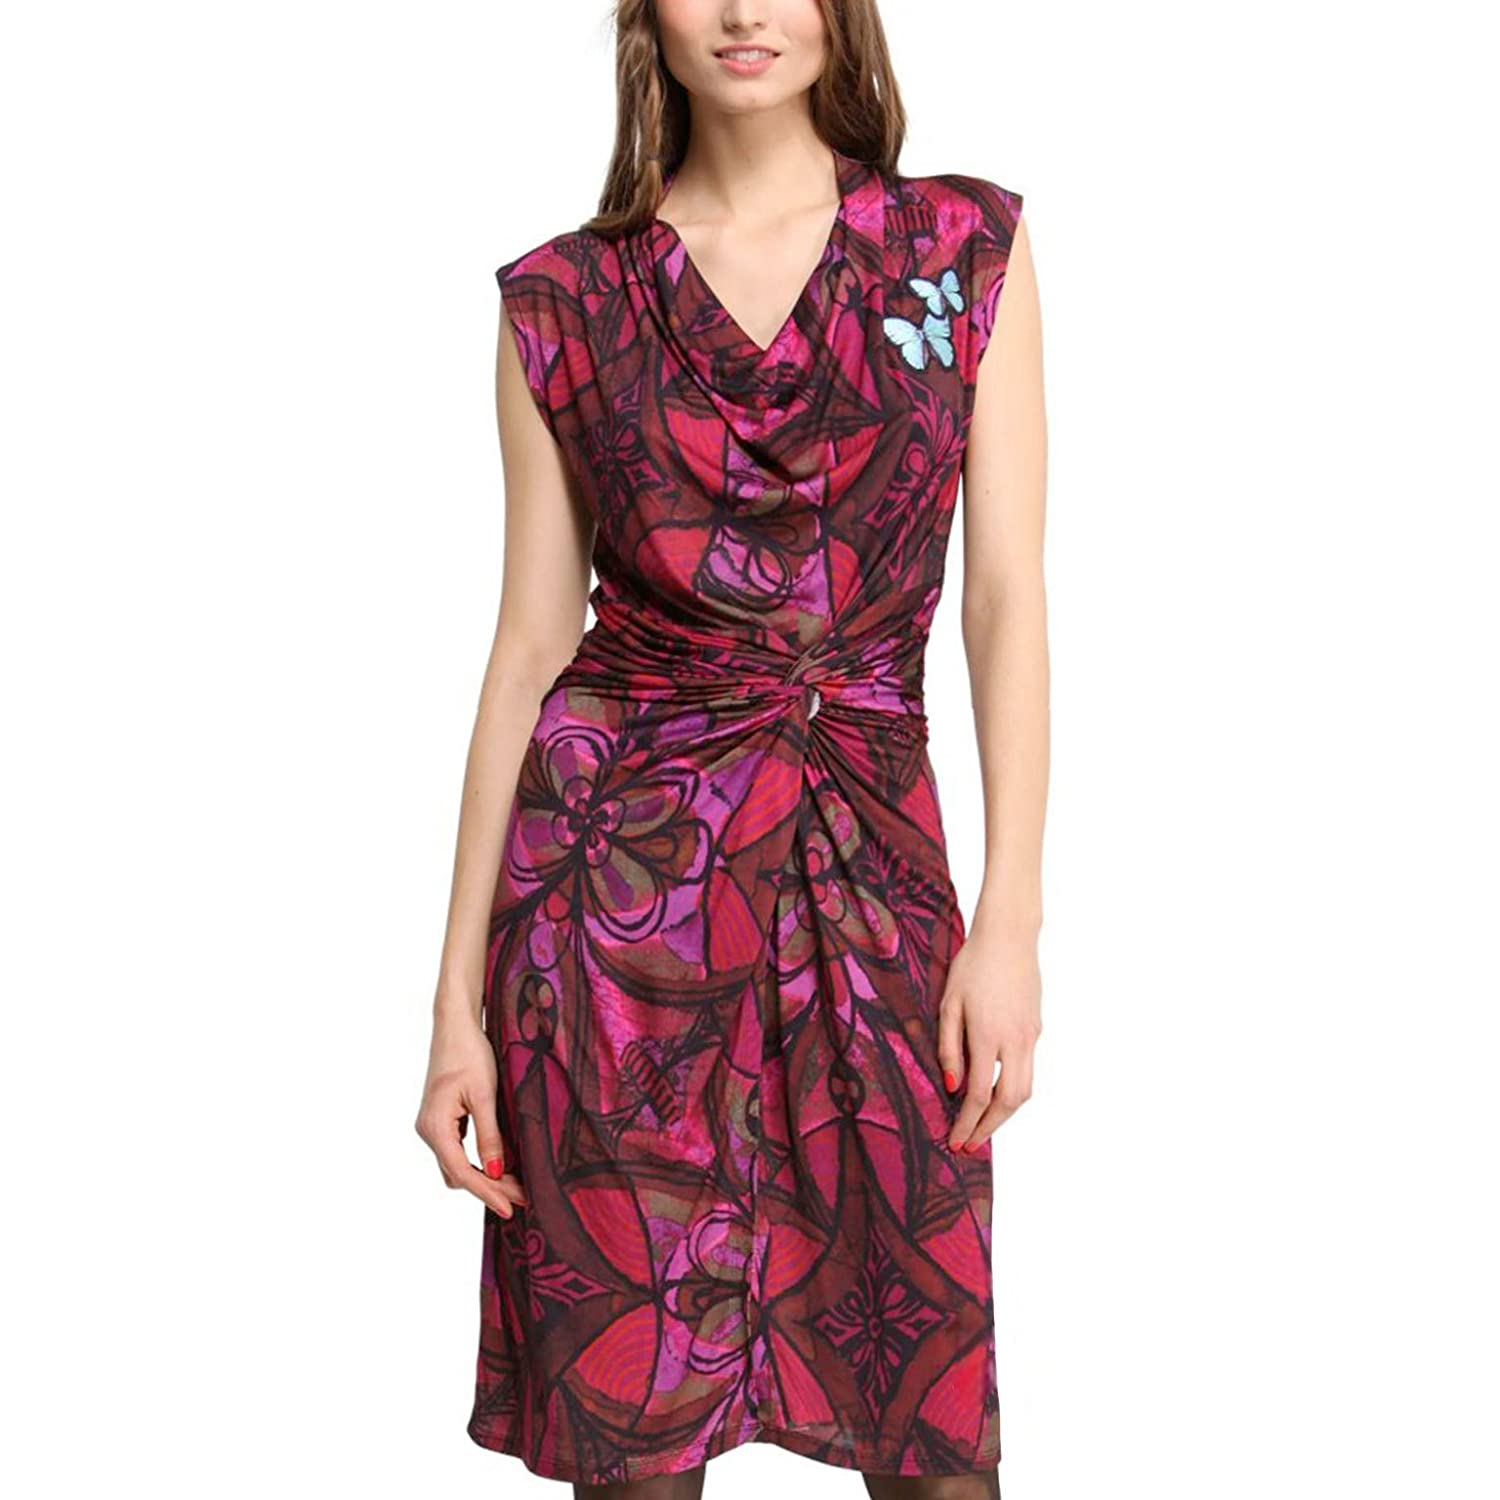 Desigual Women's A-Line Dress Medium